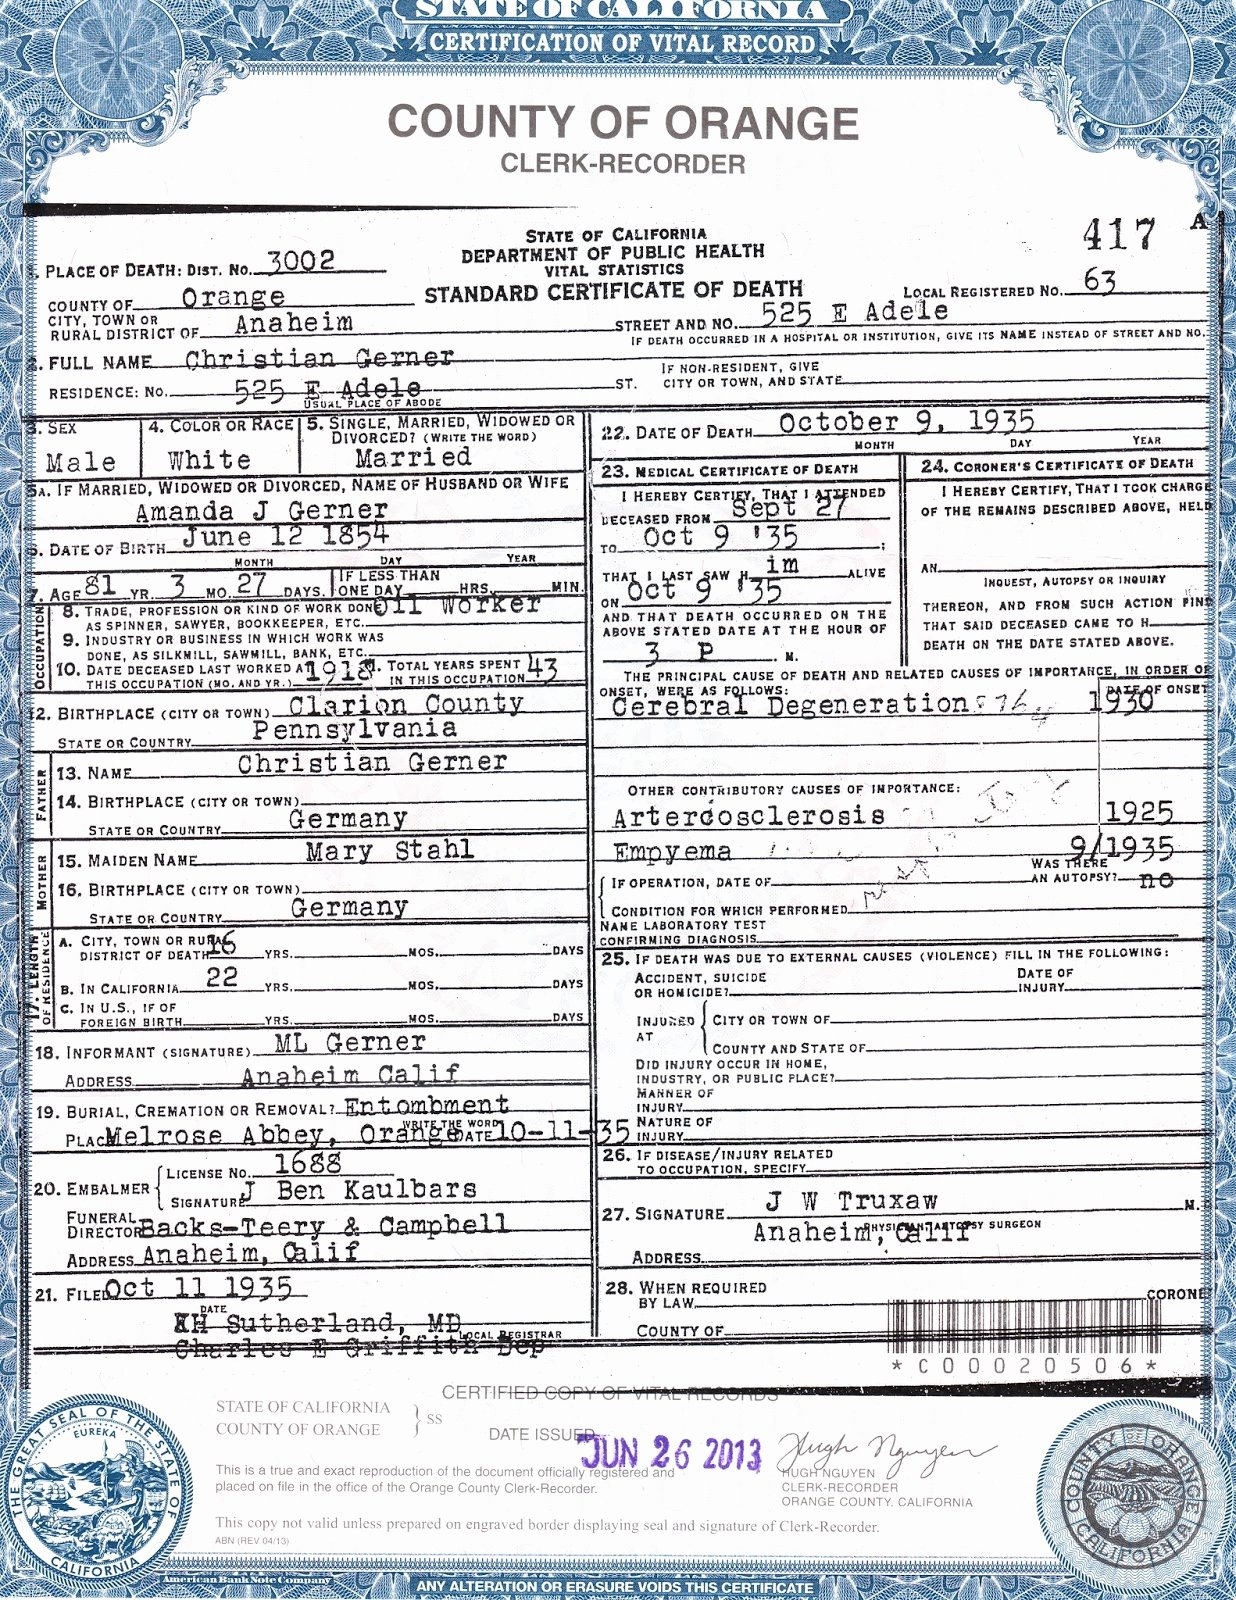 Florida Death Certificate Sample Elegant This Copy is Not Valid unless Prepared On An Engraved